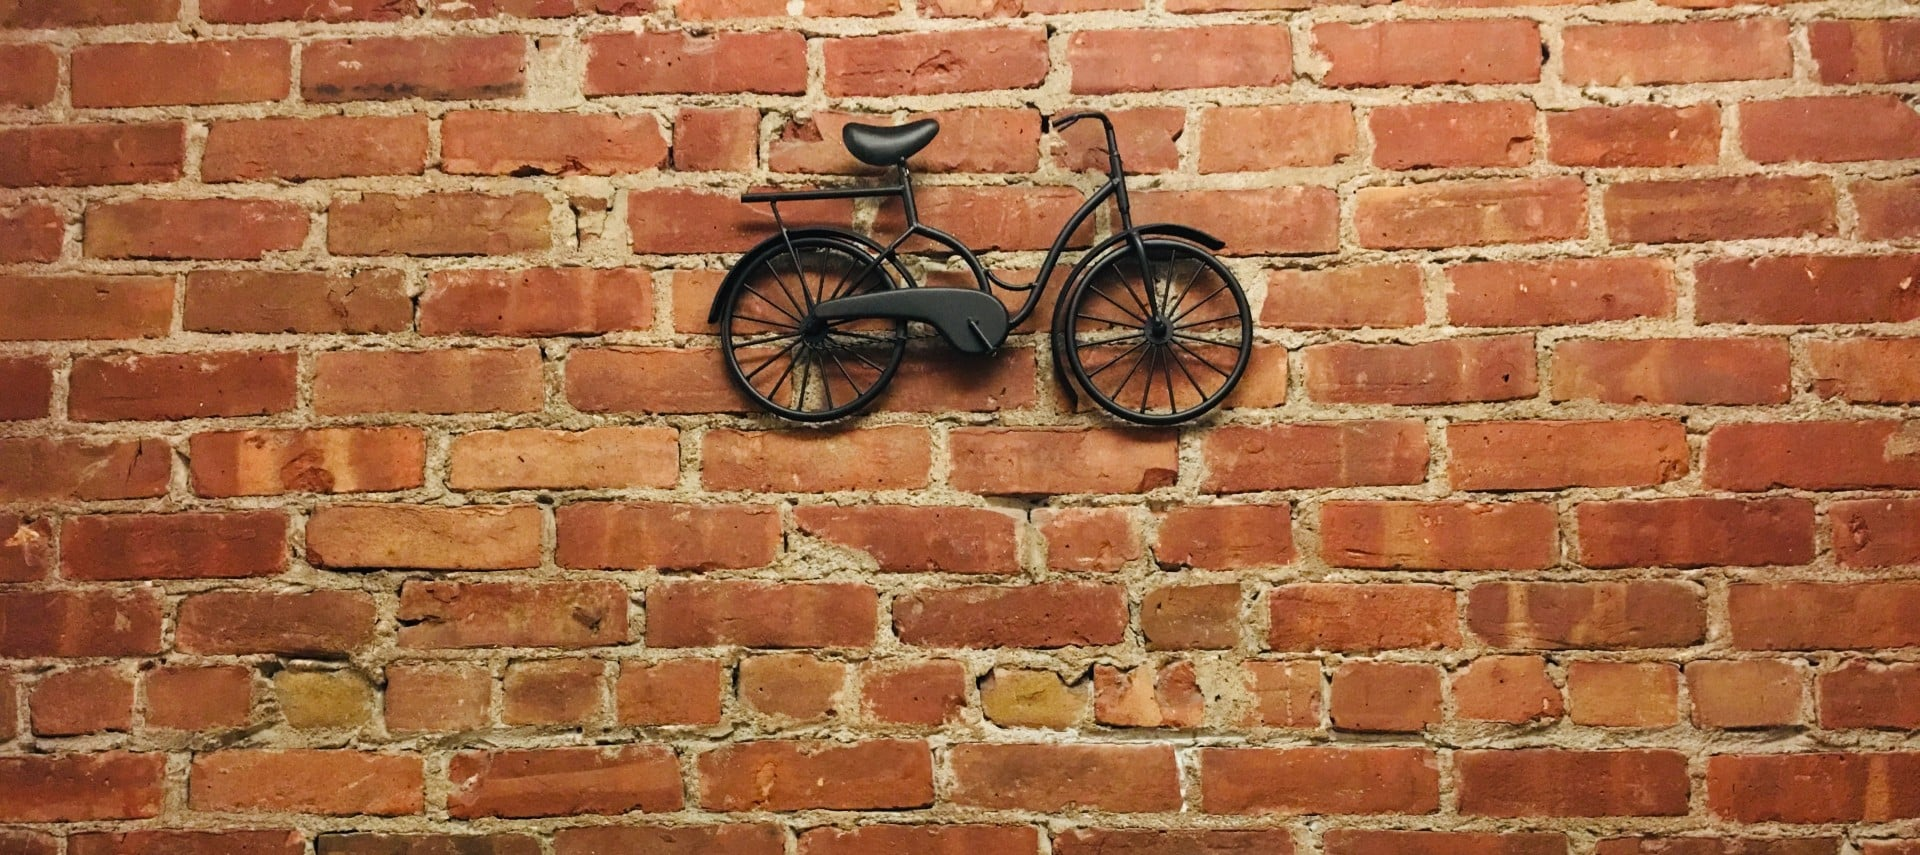 Red brick wall with a black metal bike.